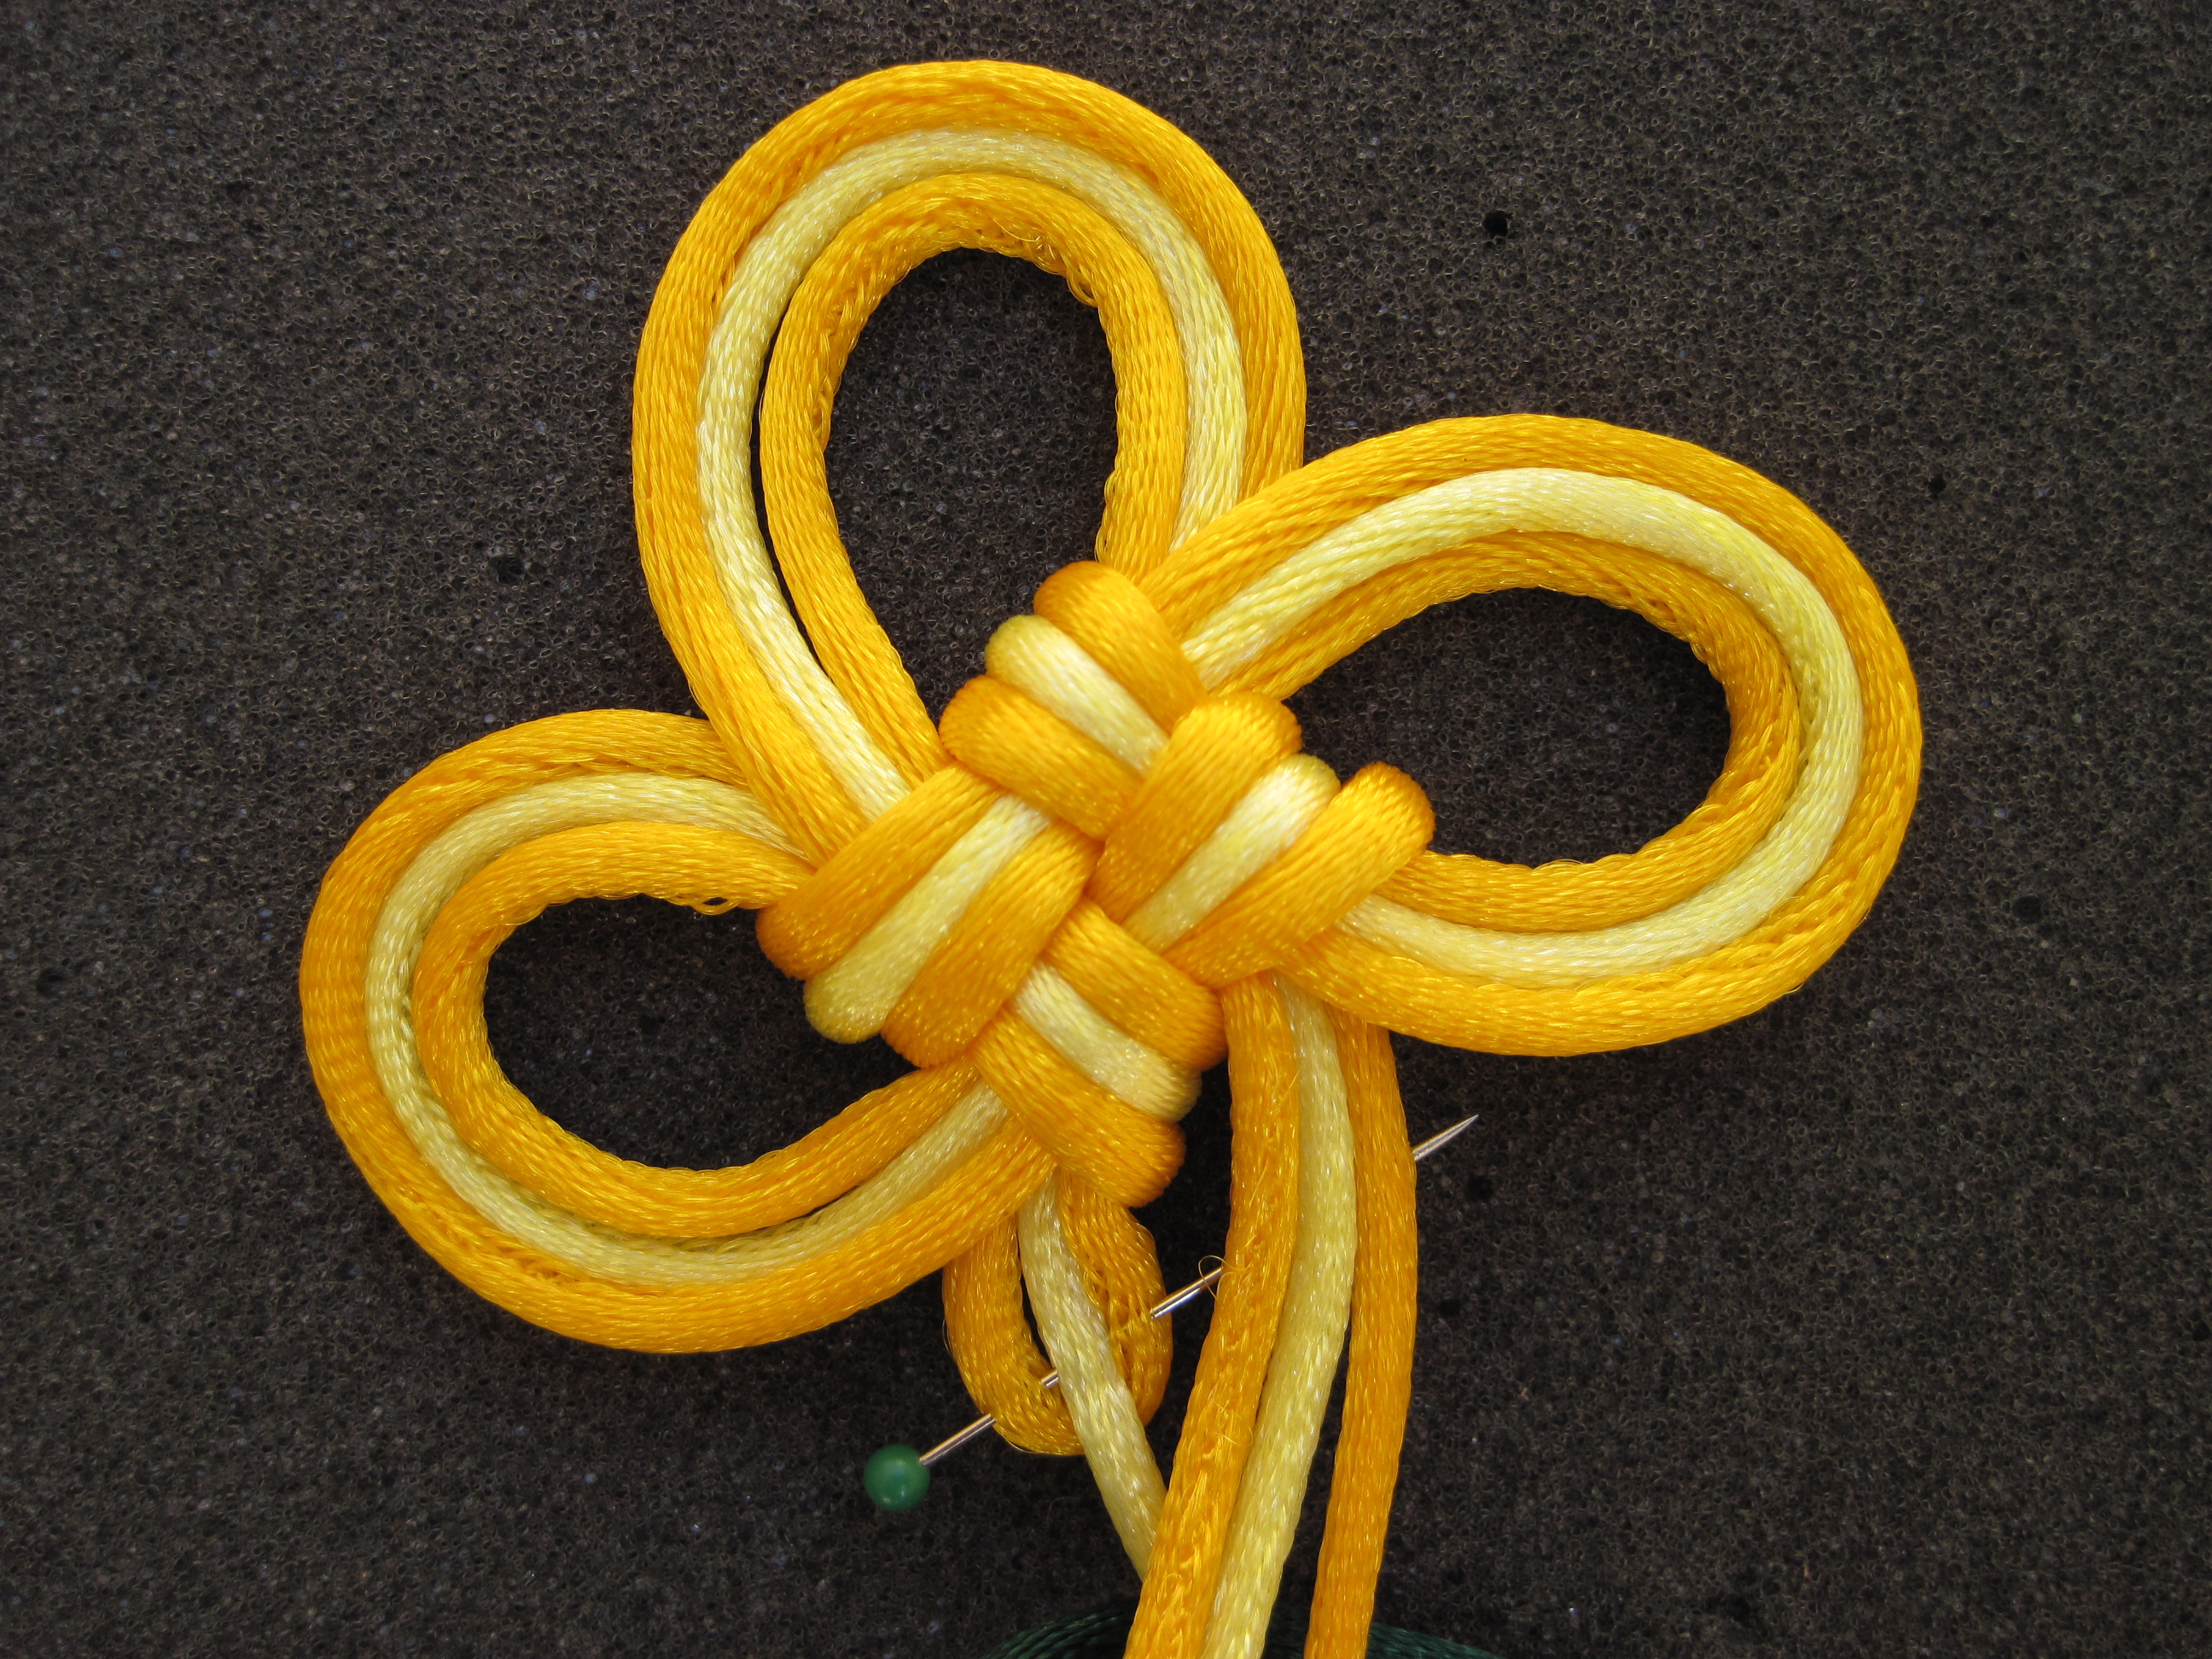 Chinese Knot Art: the 3-Leaf Clover Knot